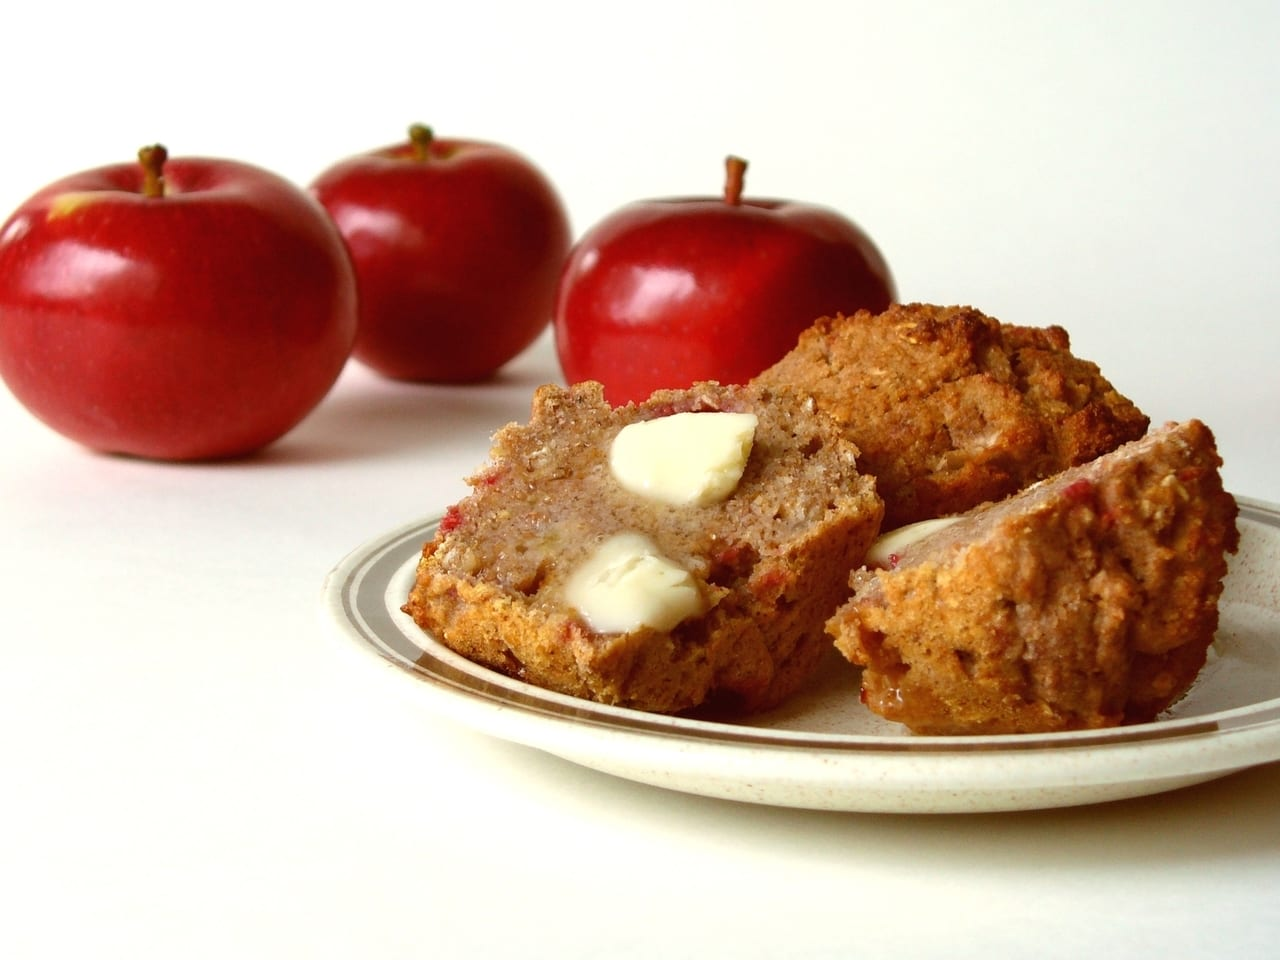 Michigan MDARD Seeks Destruction Order for 18 Oatmeal Cookies and 17 Apple Muffins